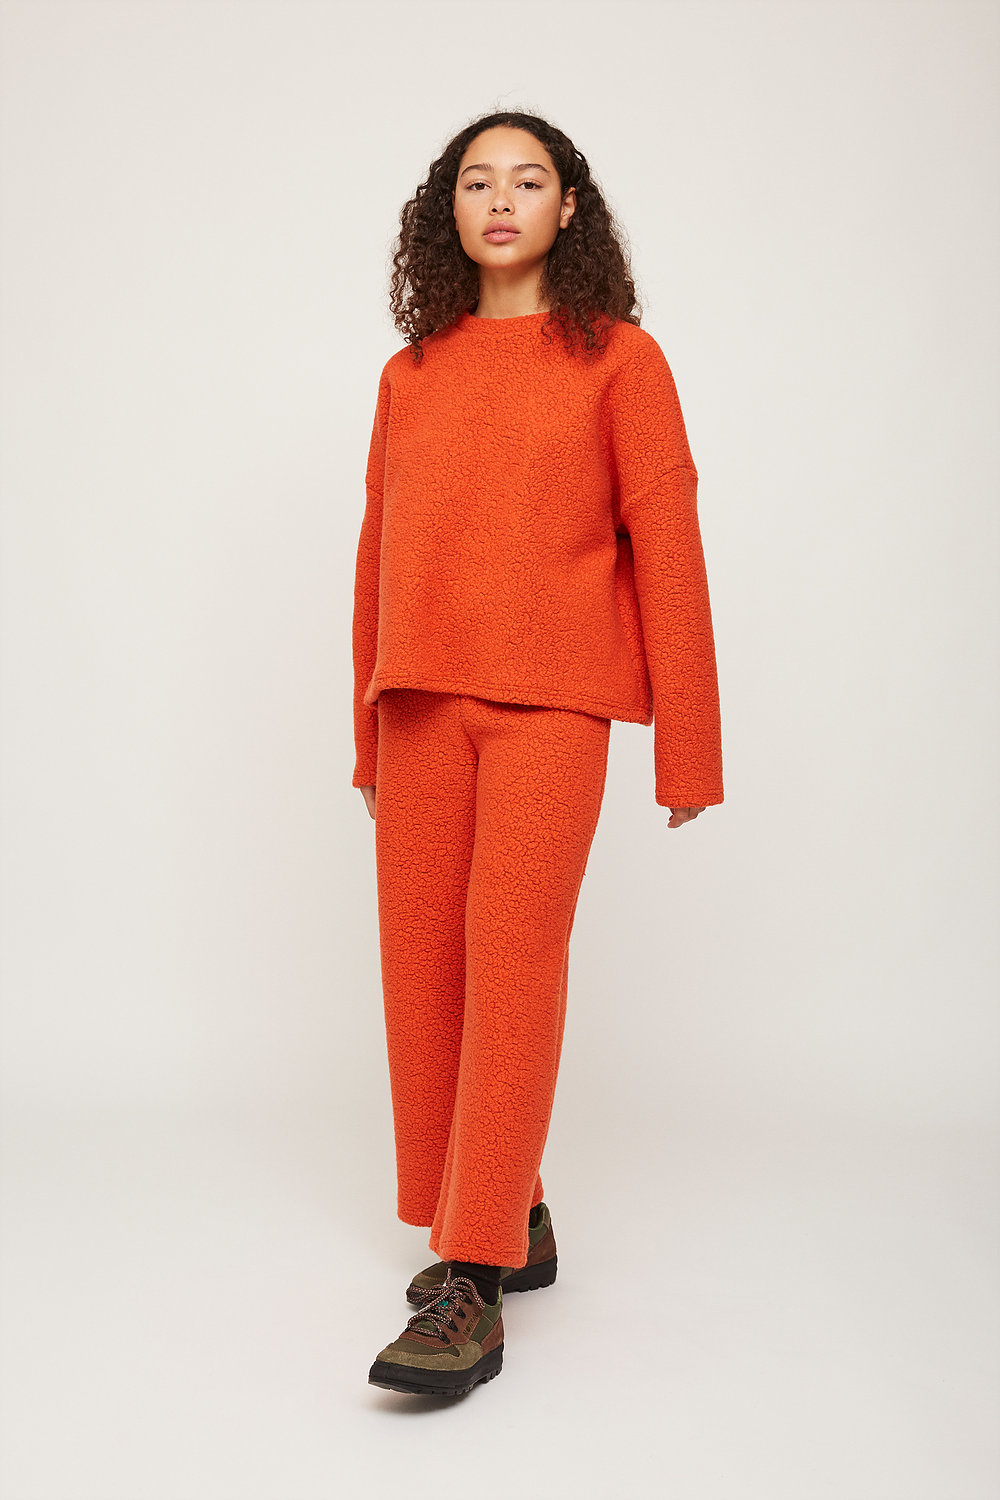 Rita Row Pants in Orange